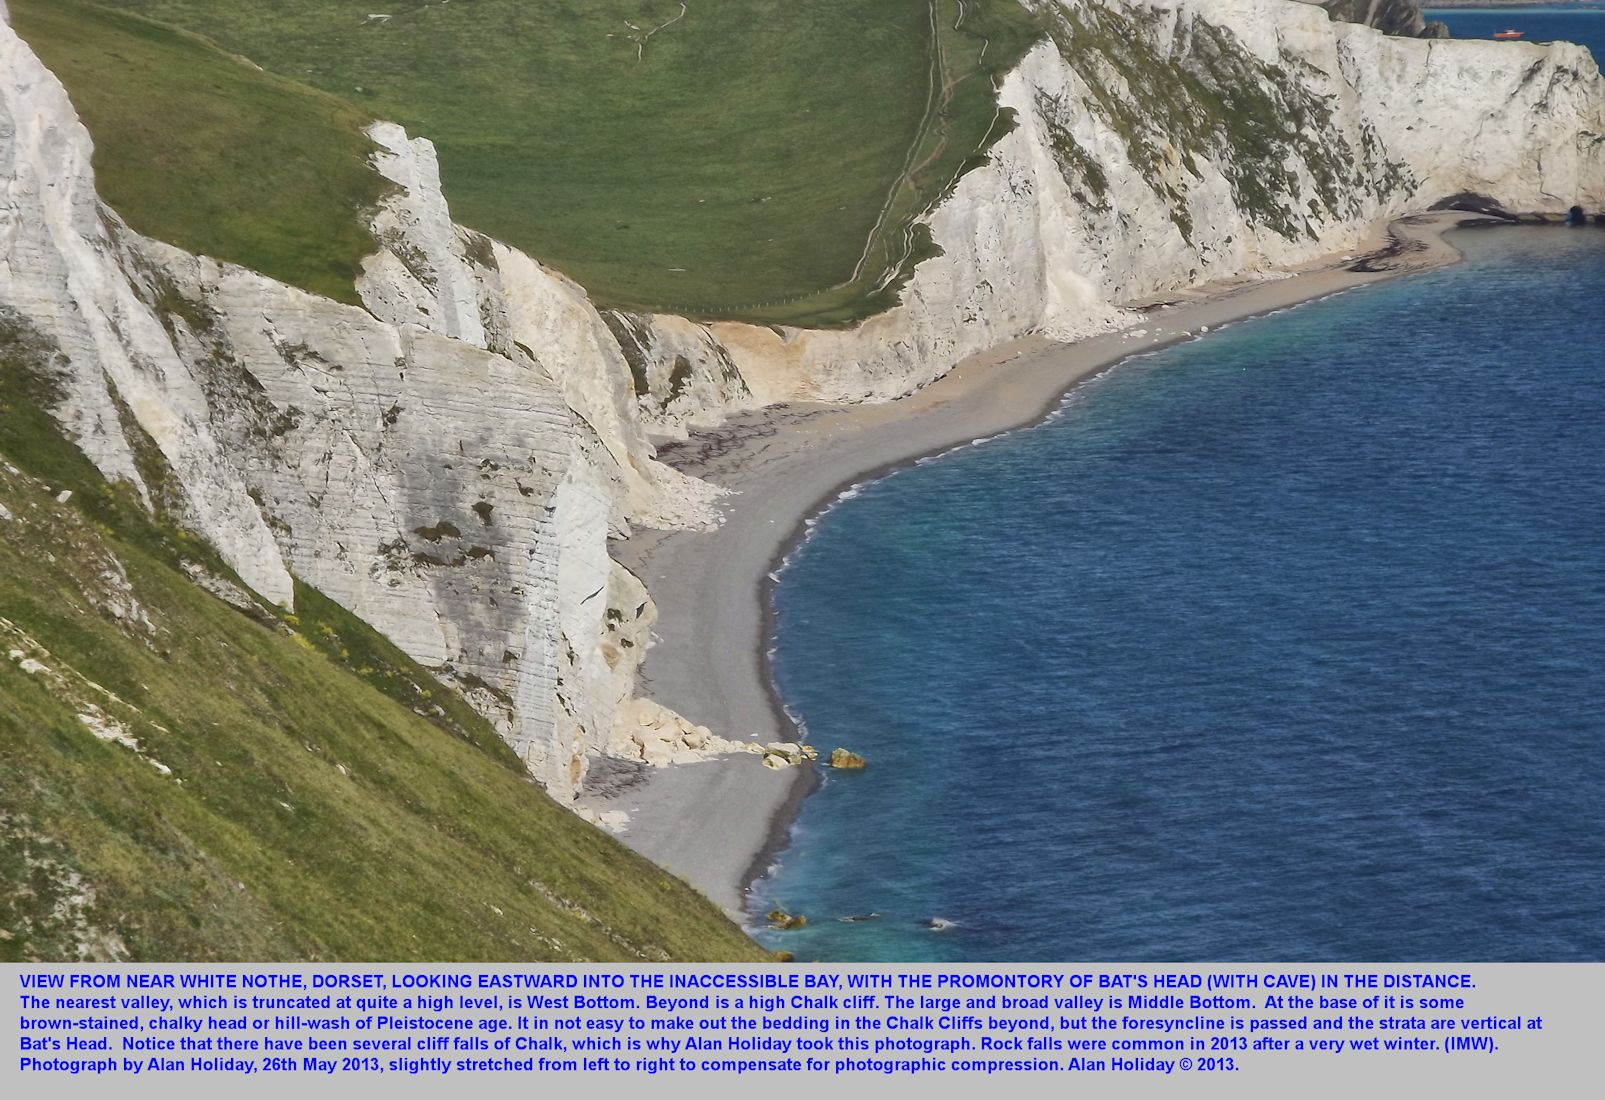 Chalk cliffs between White Nothe and Bat's Head, Dorset, including the inaccessible bay, 26th May 2013